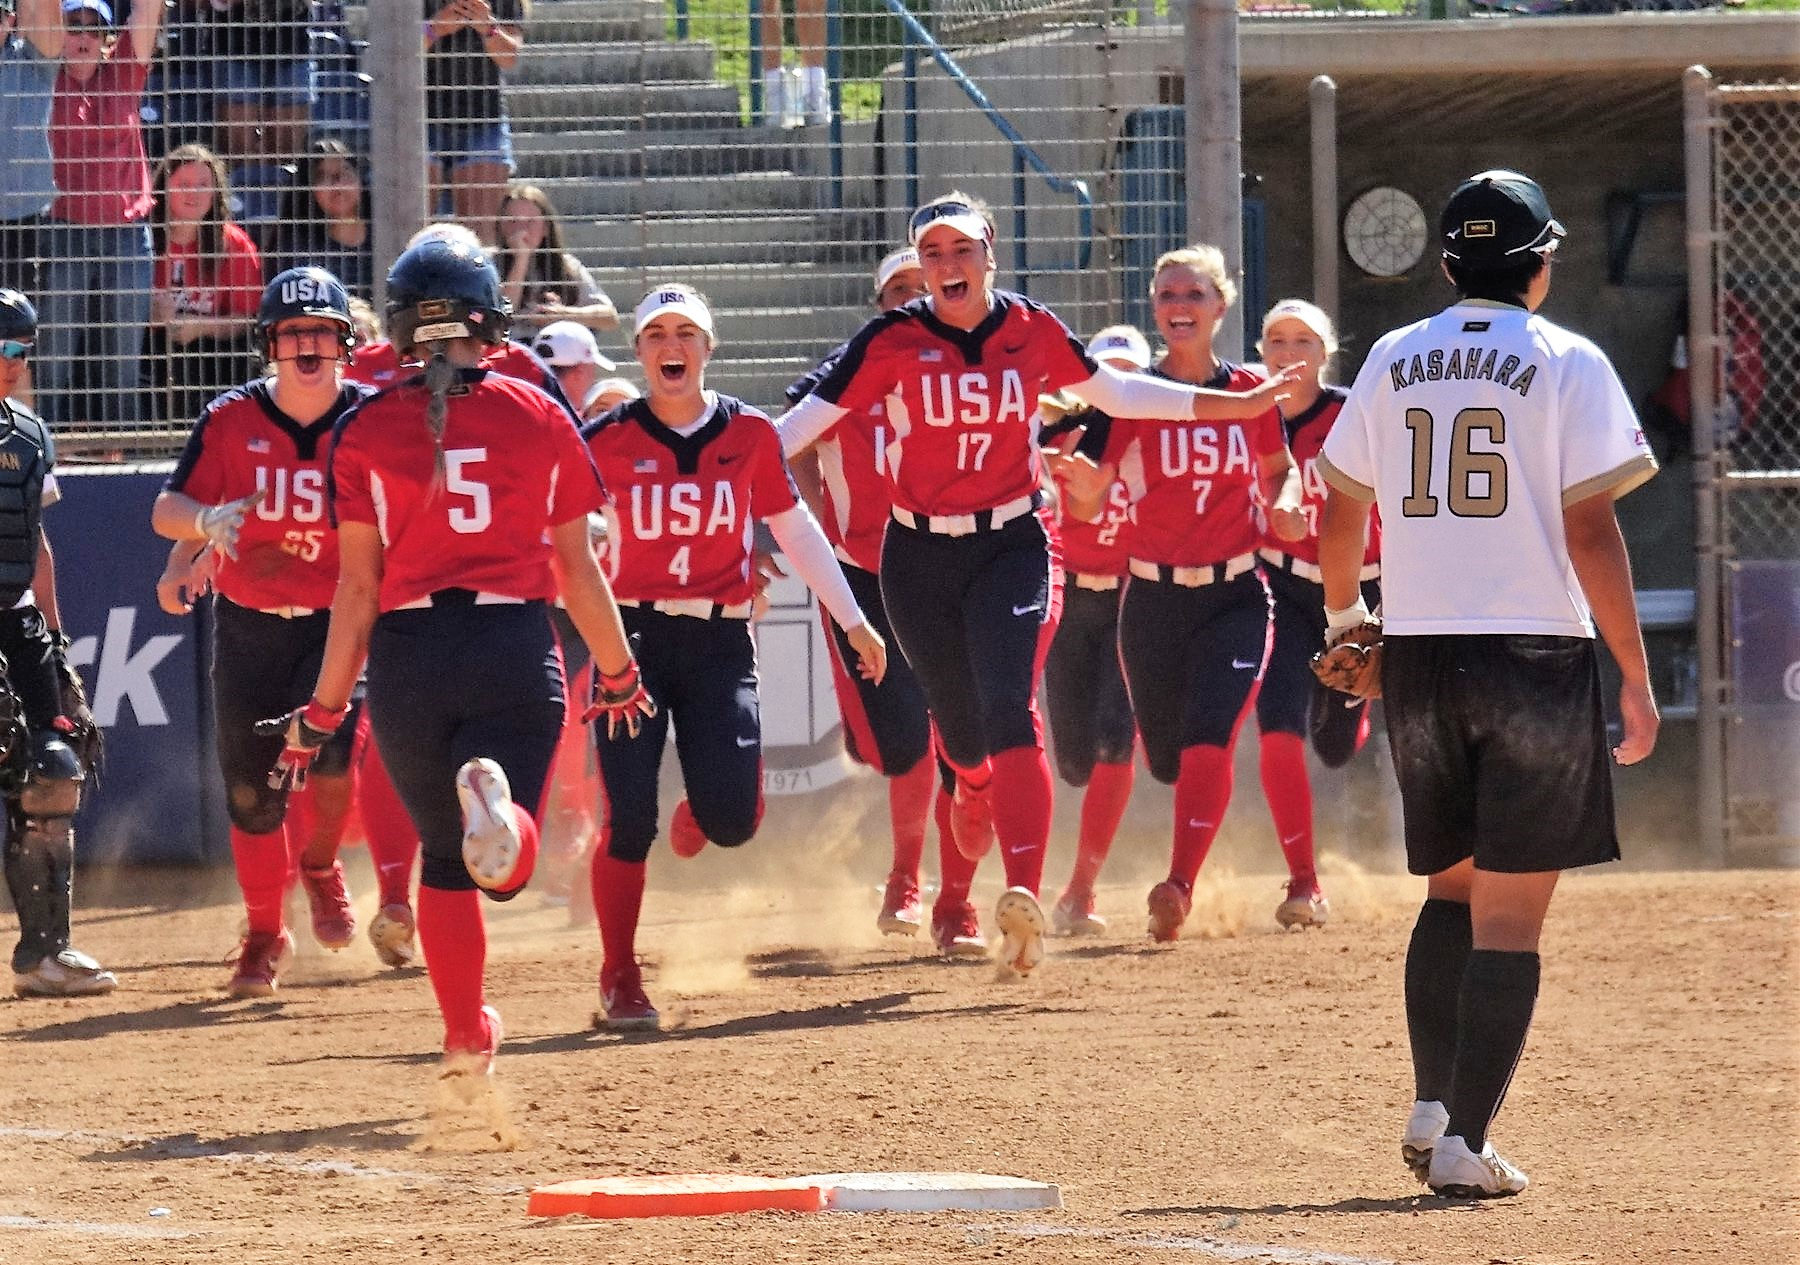 The USA celebrate Jasmine Freed after her walk-off base hit